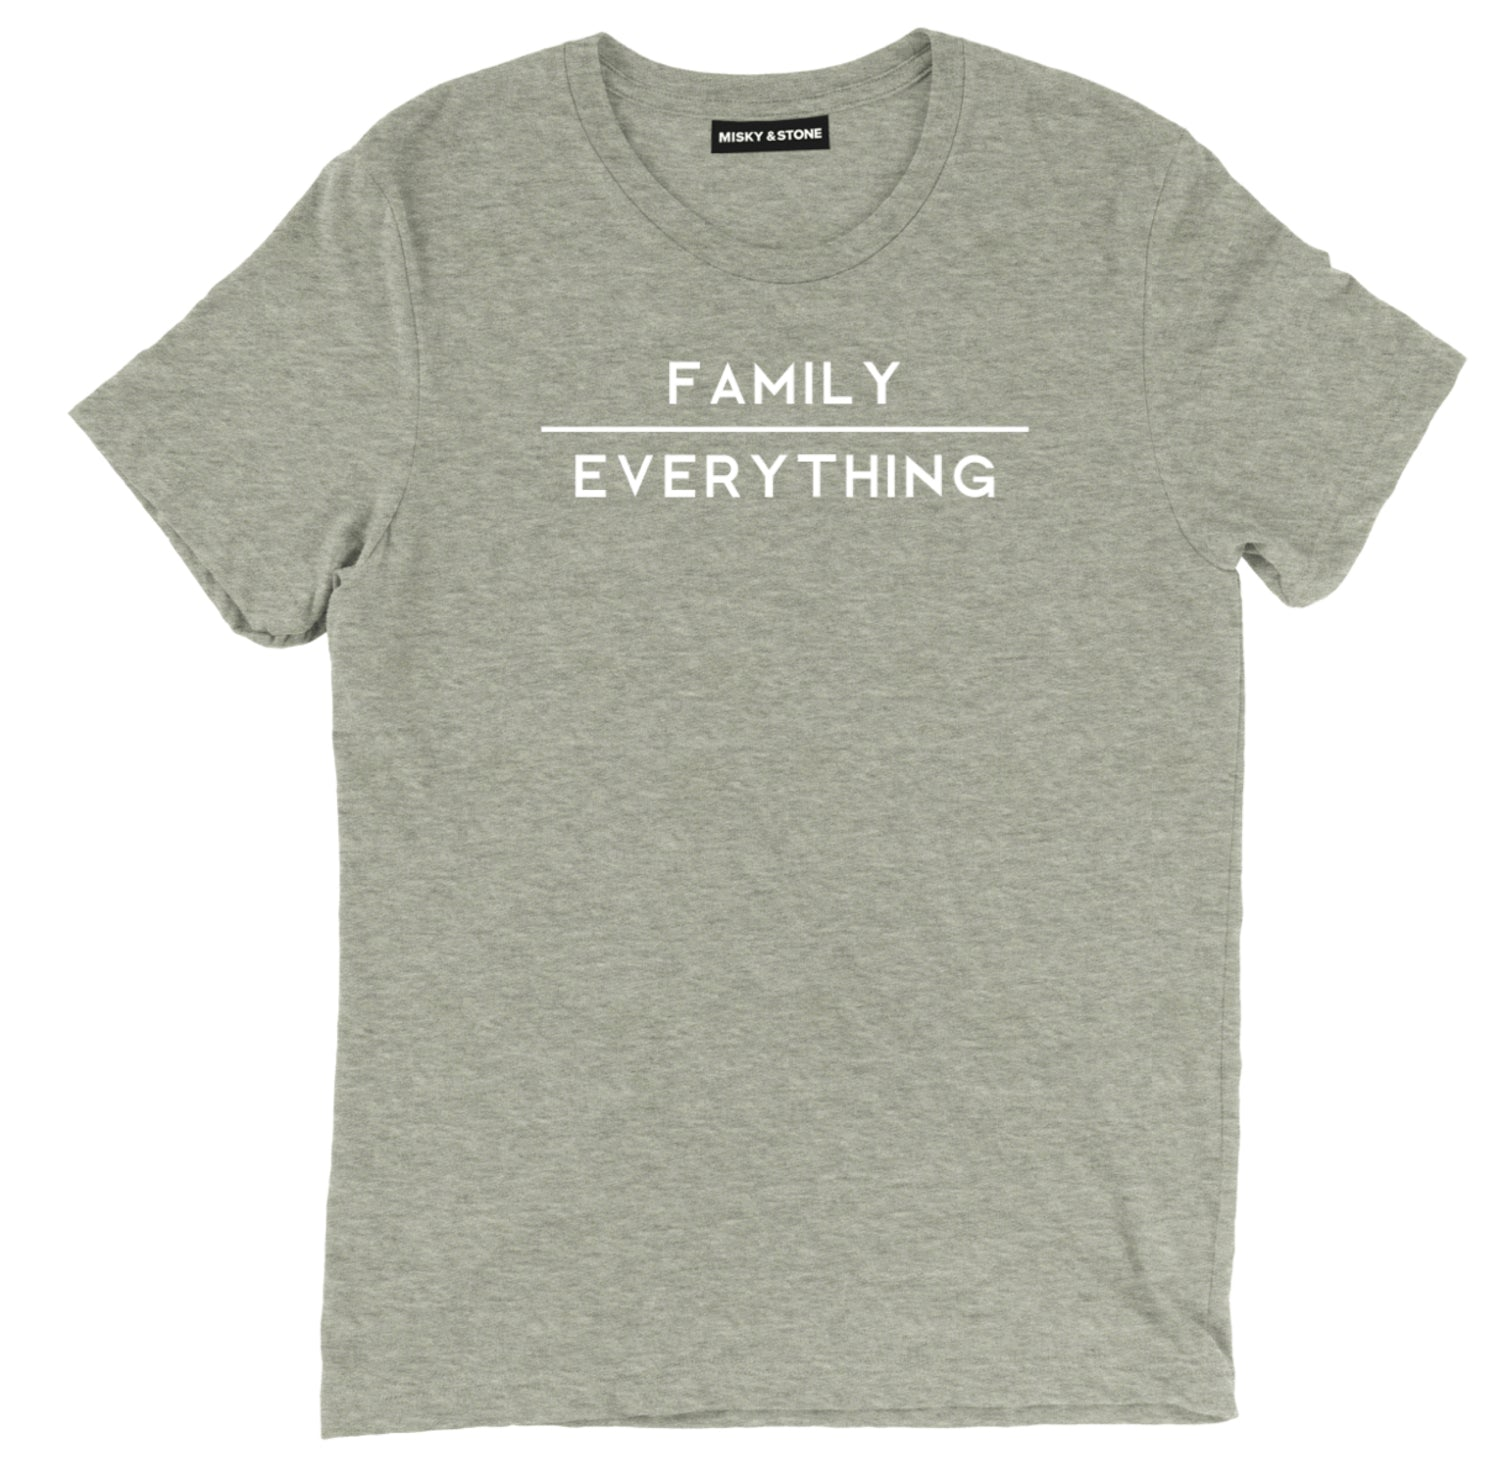 Family Over Everything Unisex Tee Shirt